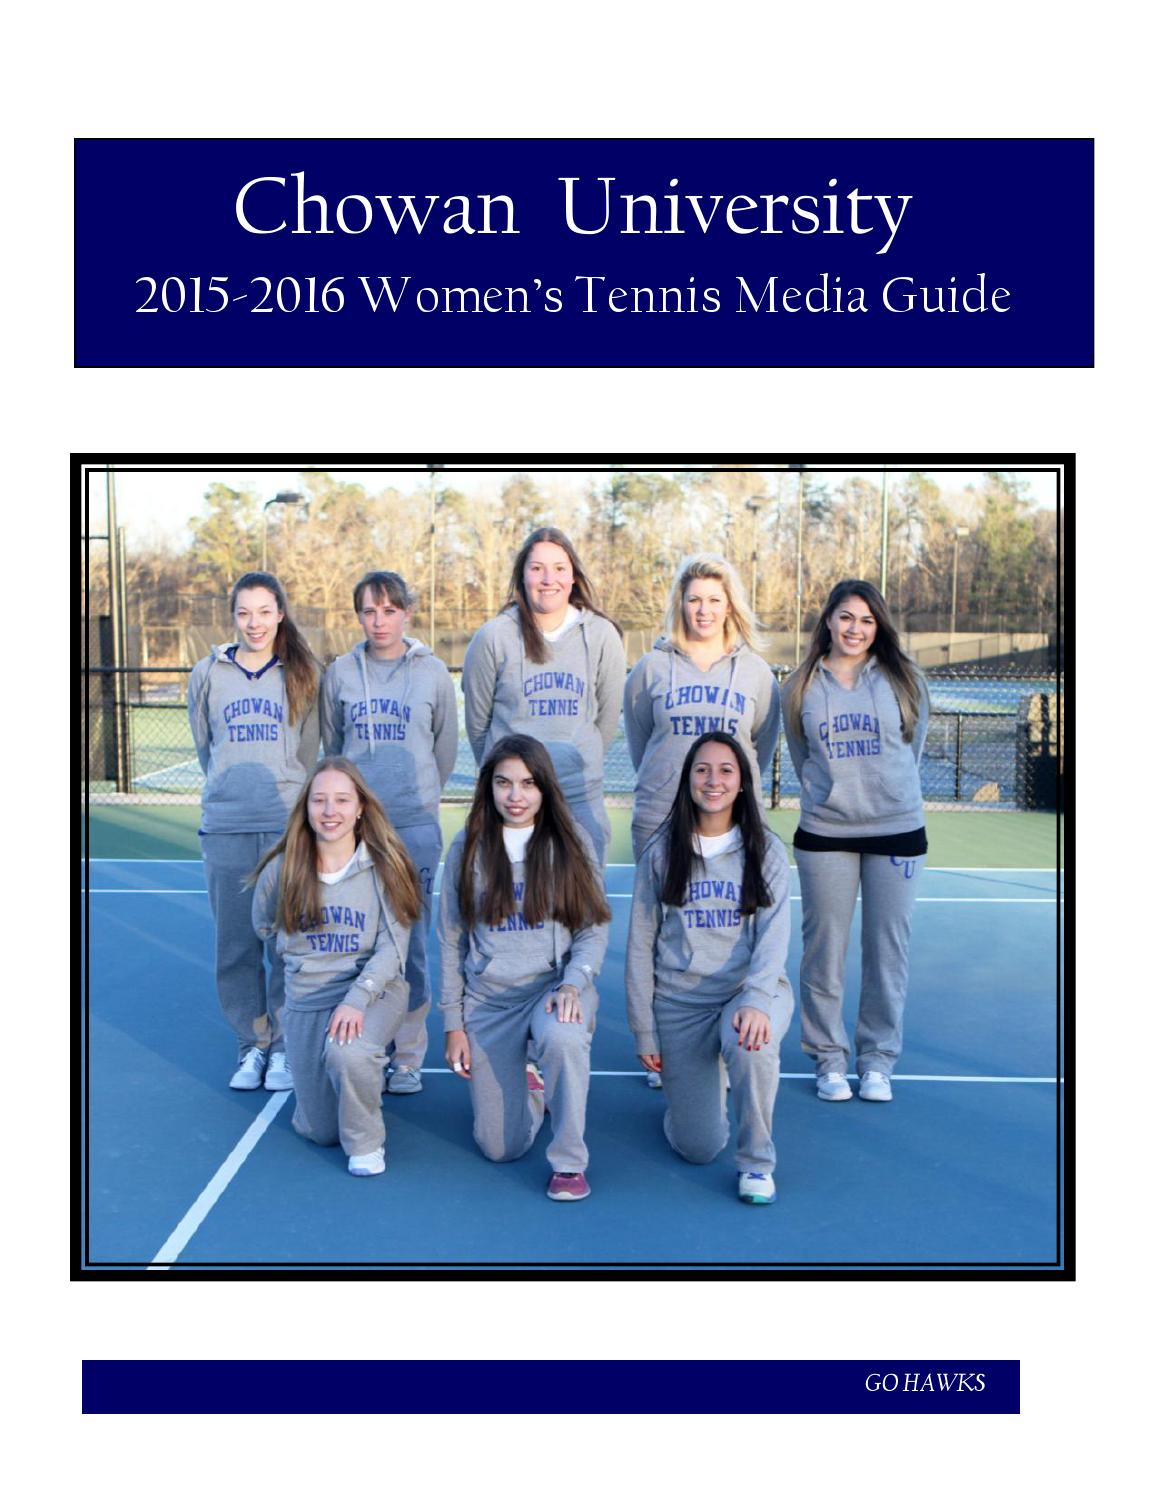 2015-2016 Chowan Women's Tennis Media Guide by Meredith ...